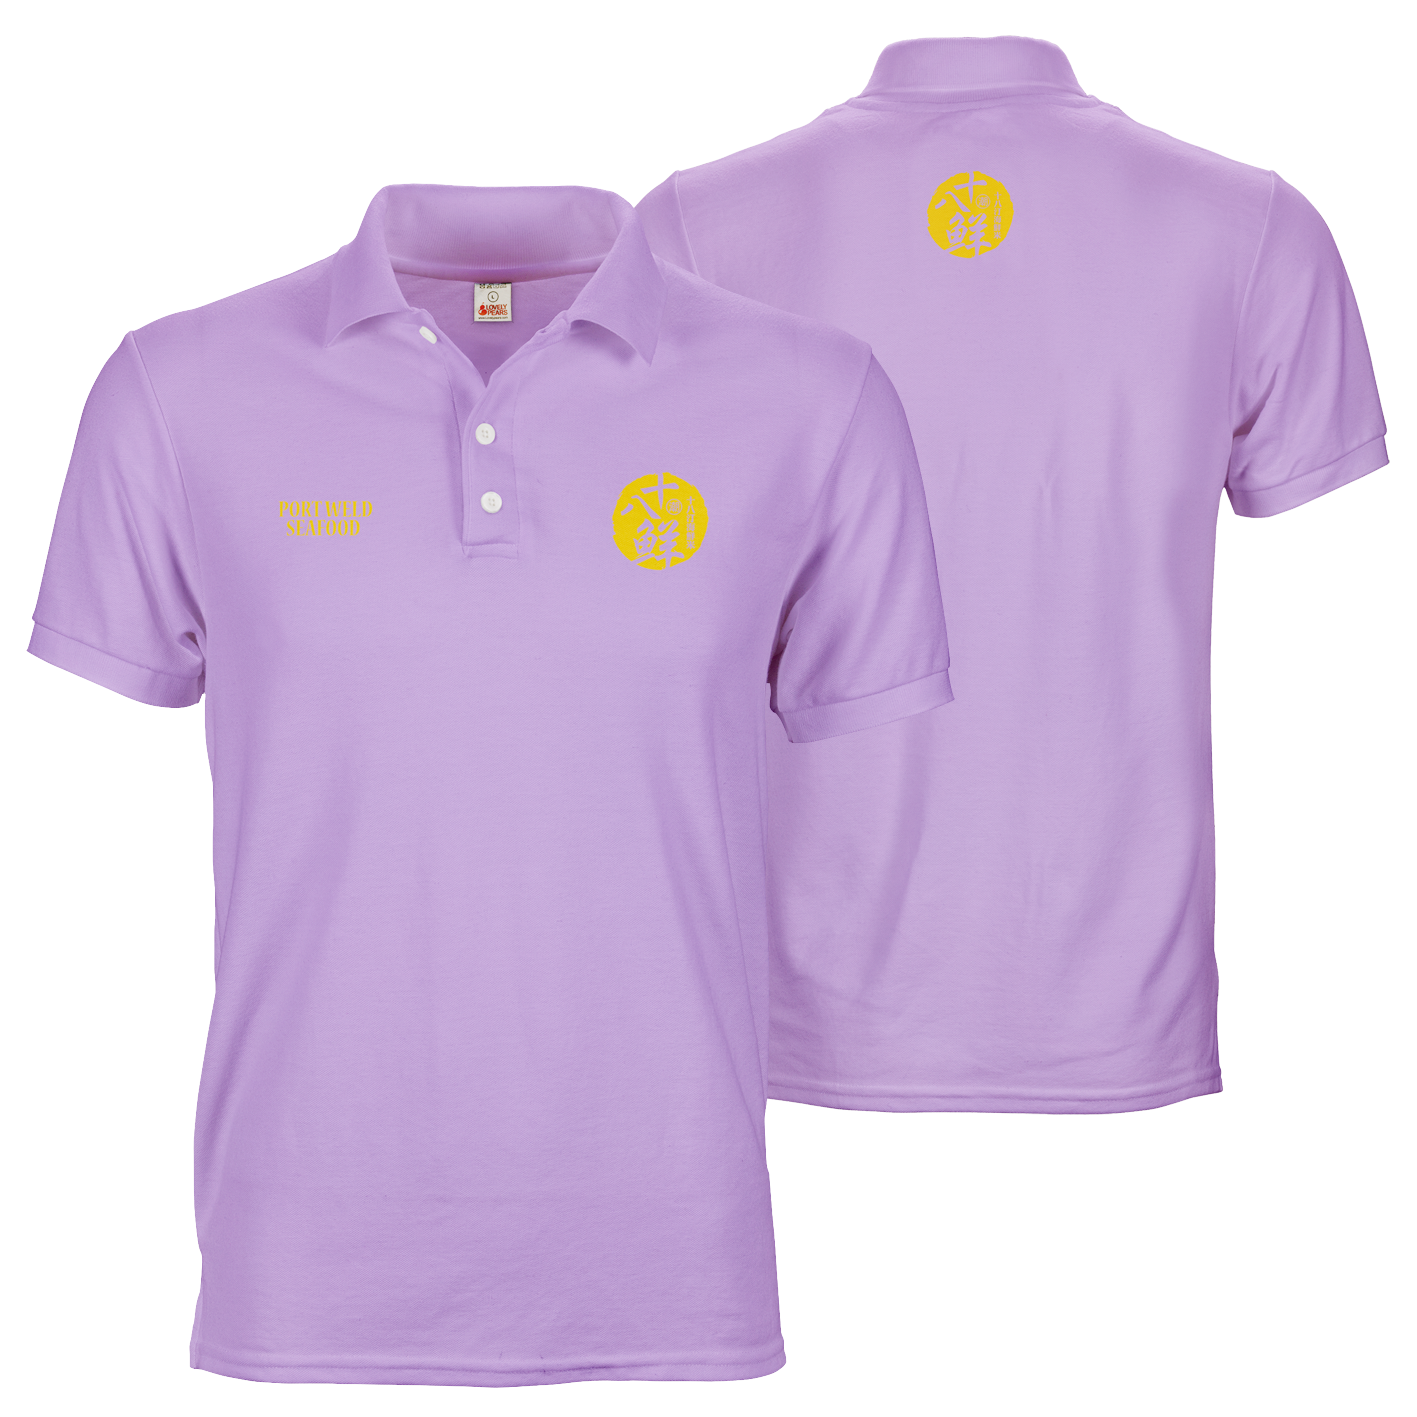 Light purple restaurant polo tee shirt with A6 logo prints on front and back